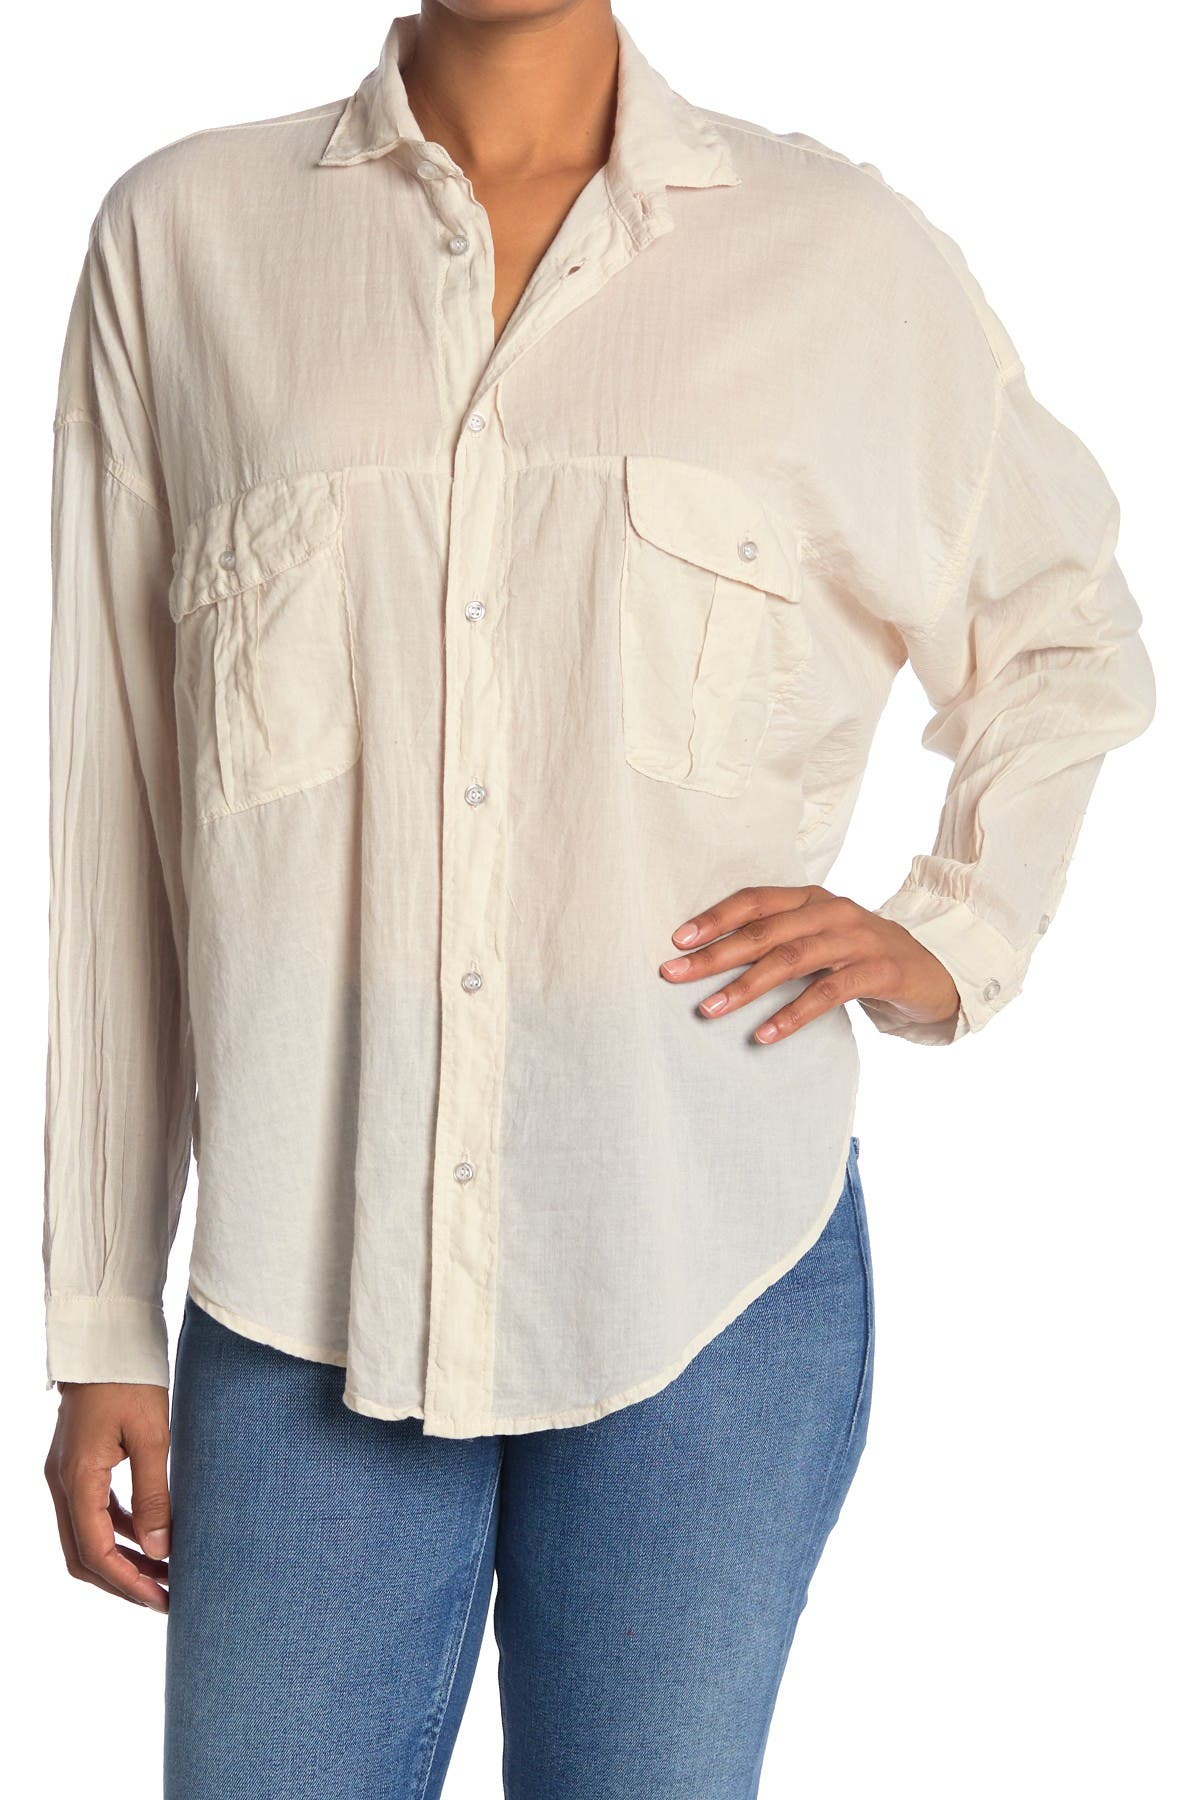 Image of NSF CLOTHING Marci Safari Button Down Shirt